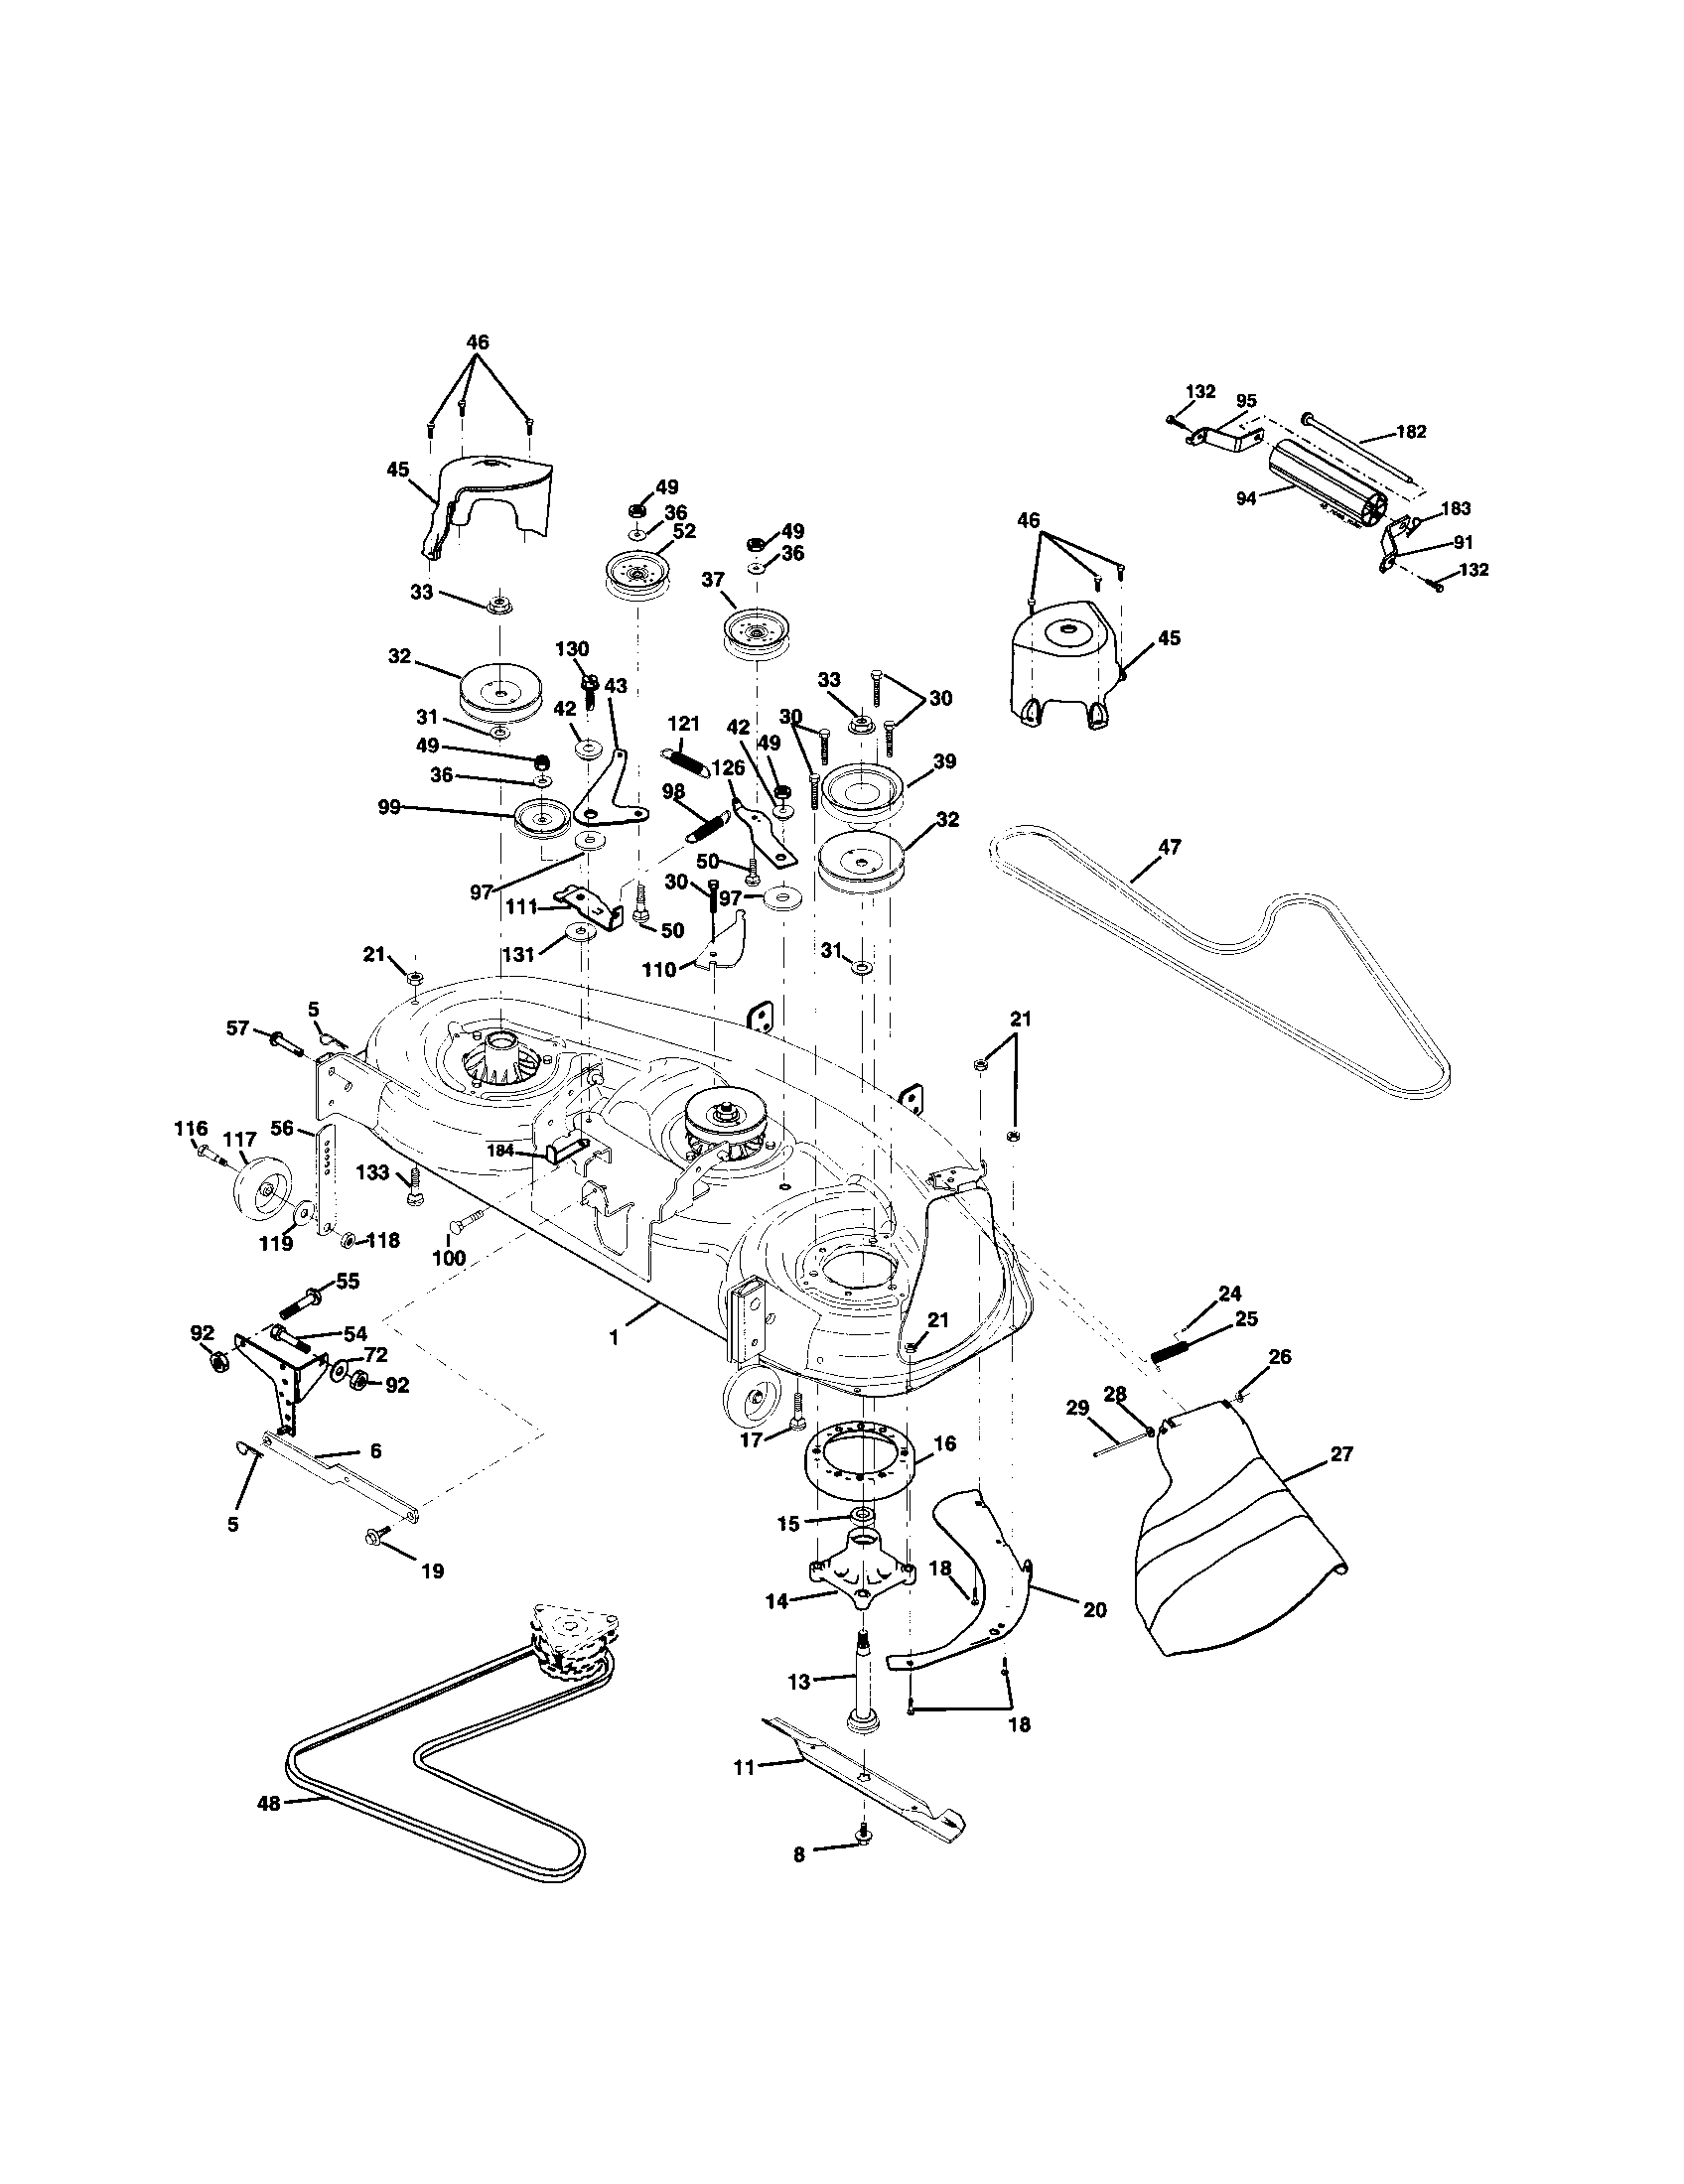 MOWER DECK Diagram & Parts List for Model yth2148